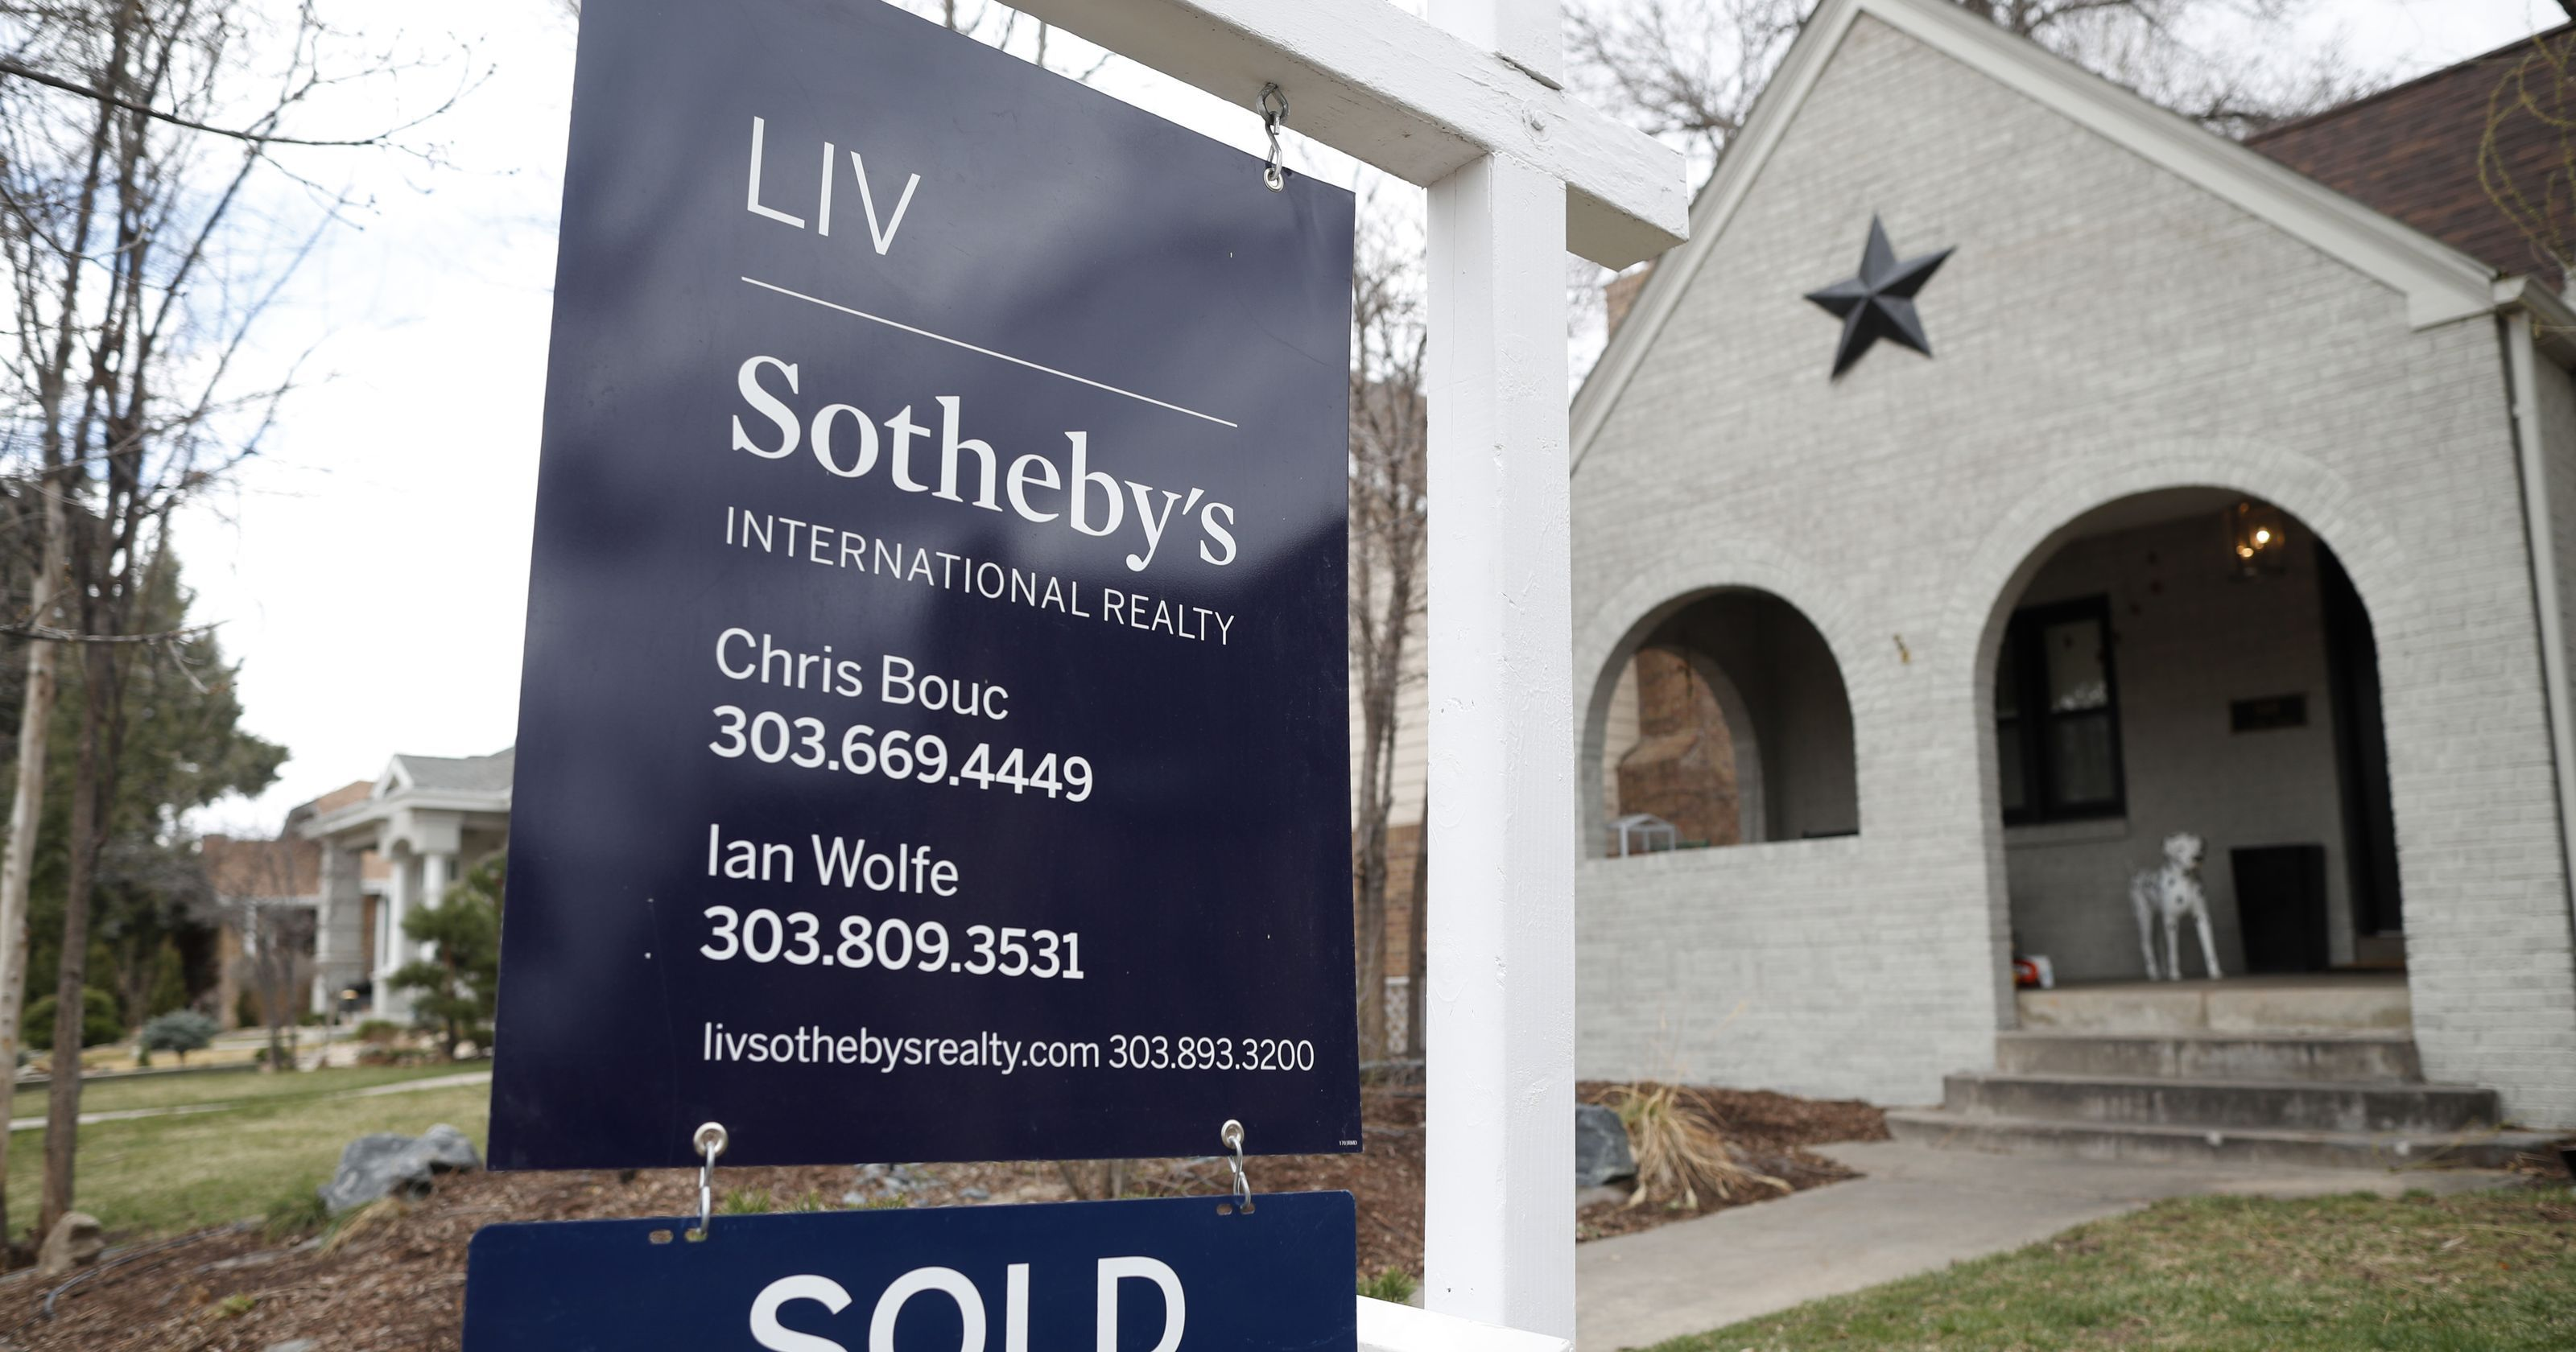 US home sales fall 2.5 in April, Mortgage rates hit 7